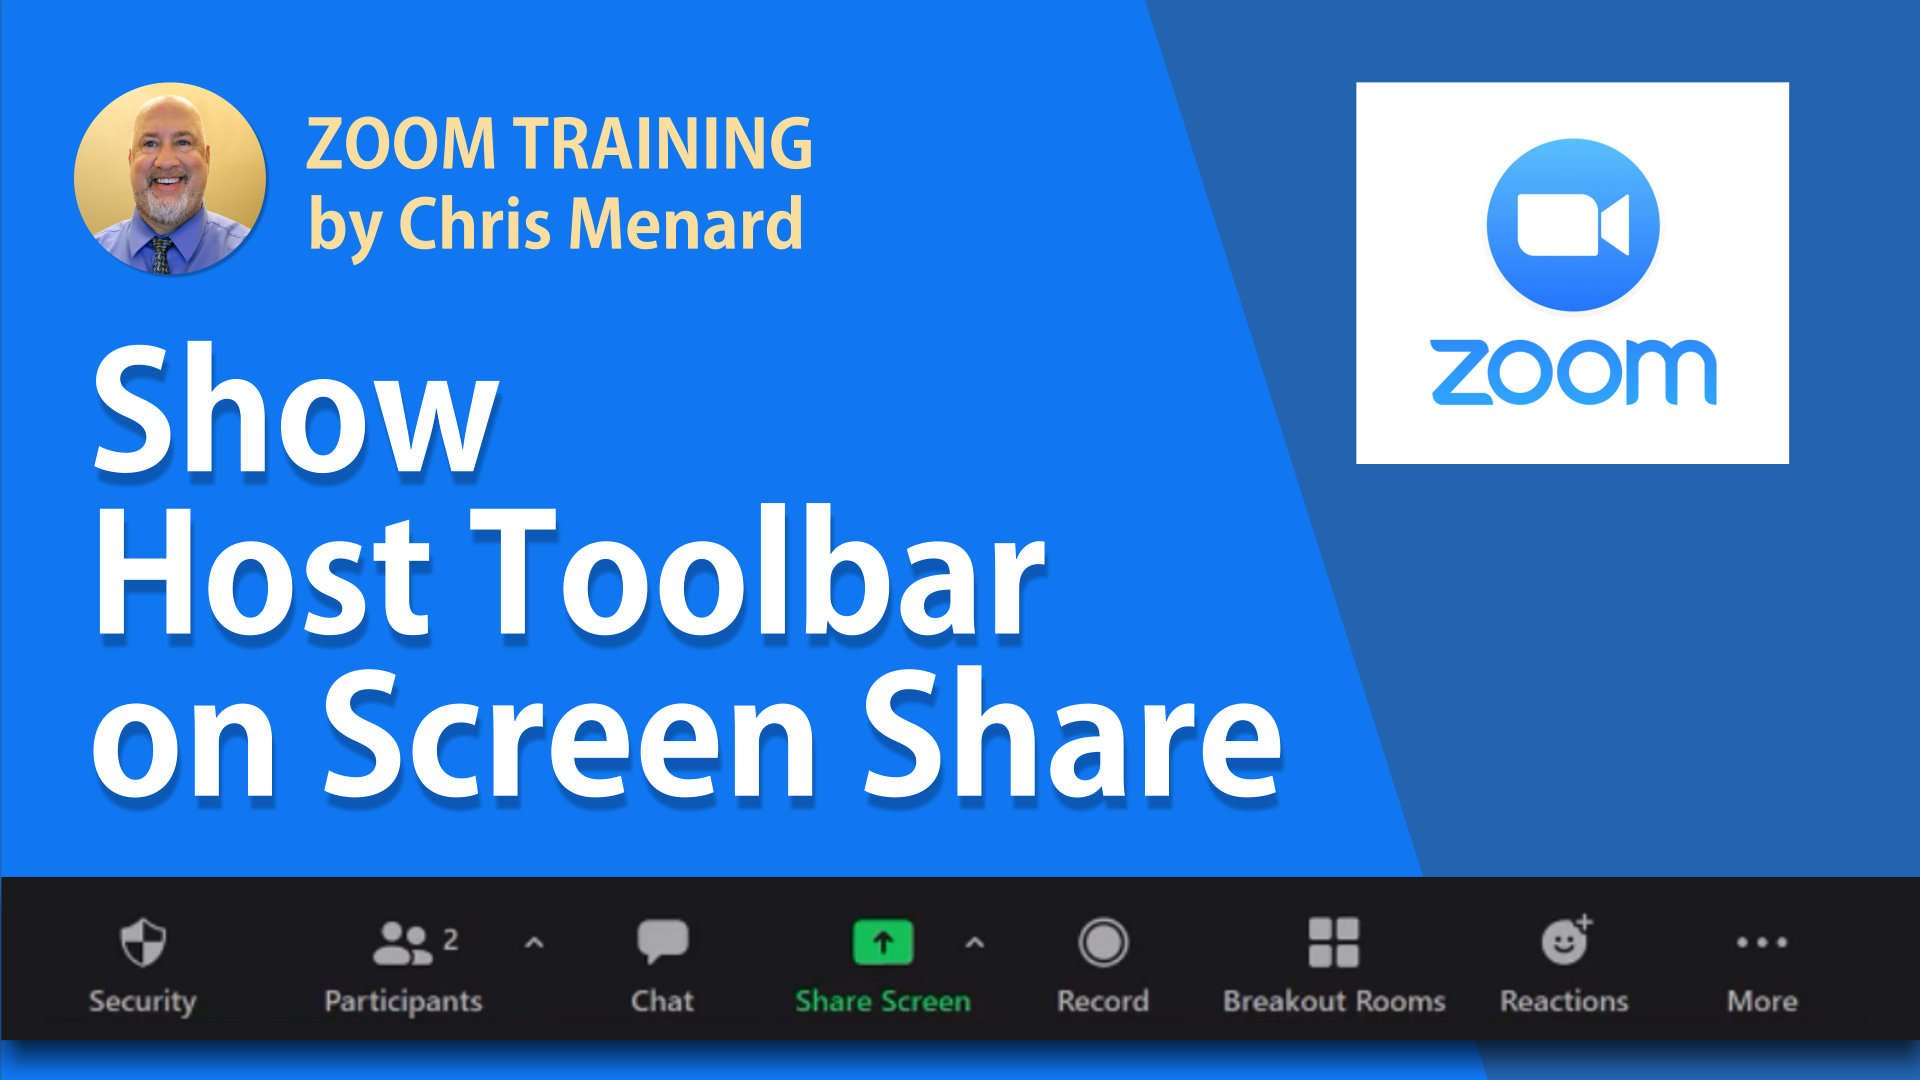 Zoom - Show host toolbar controls during screen share